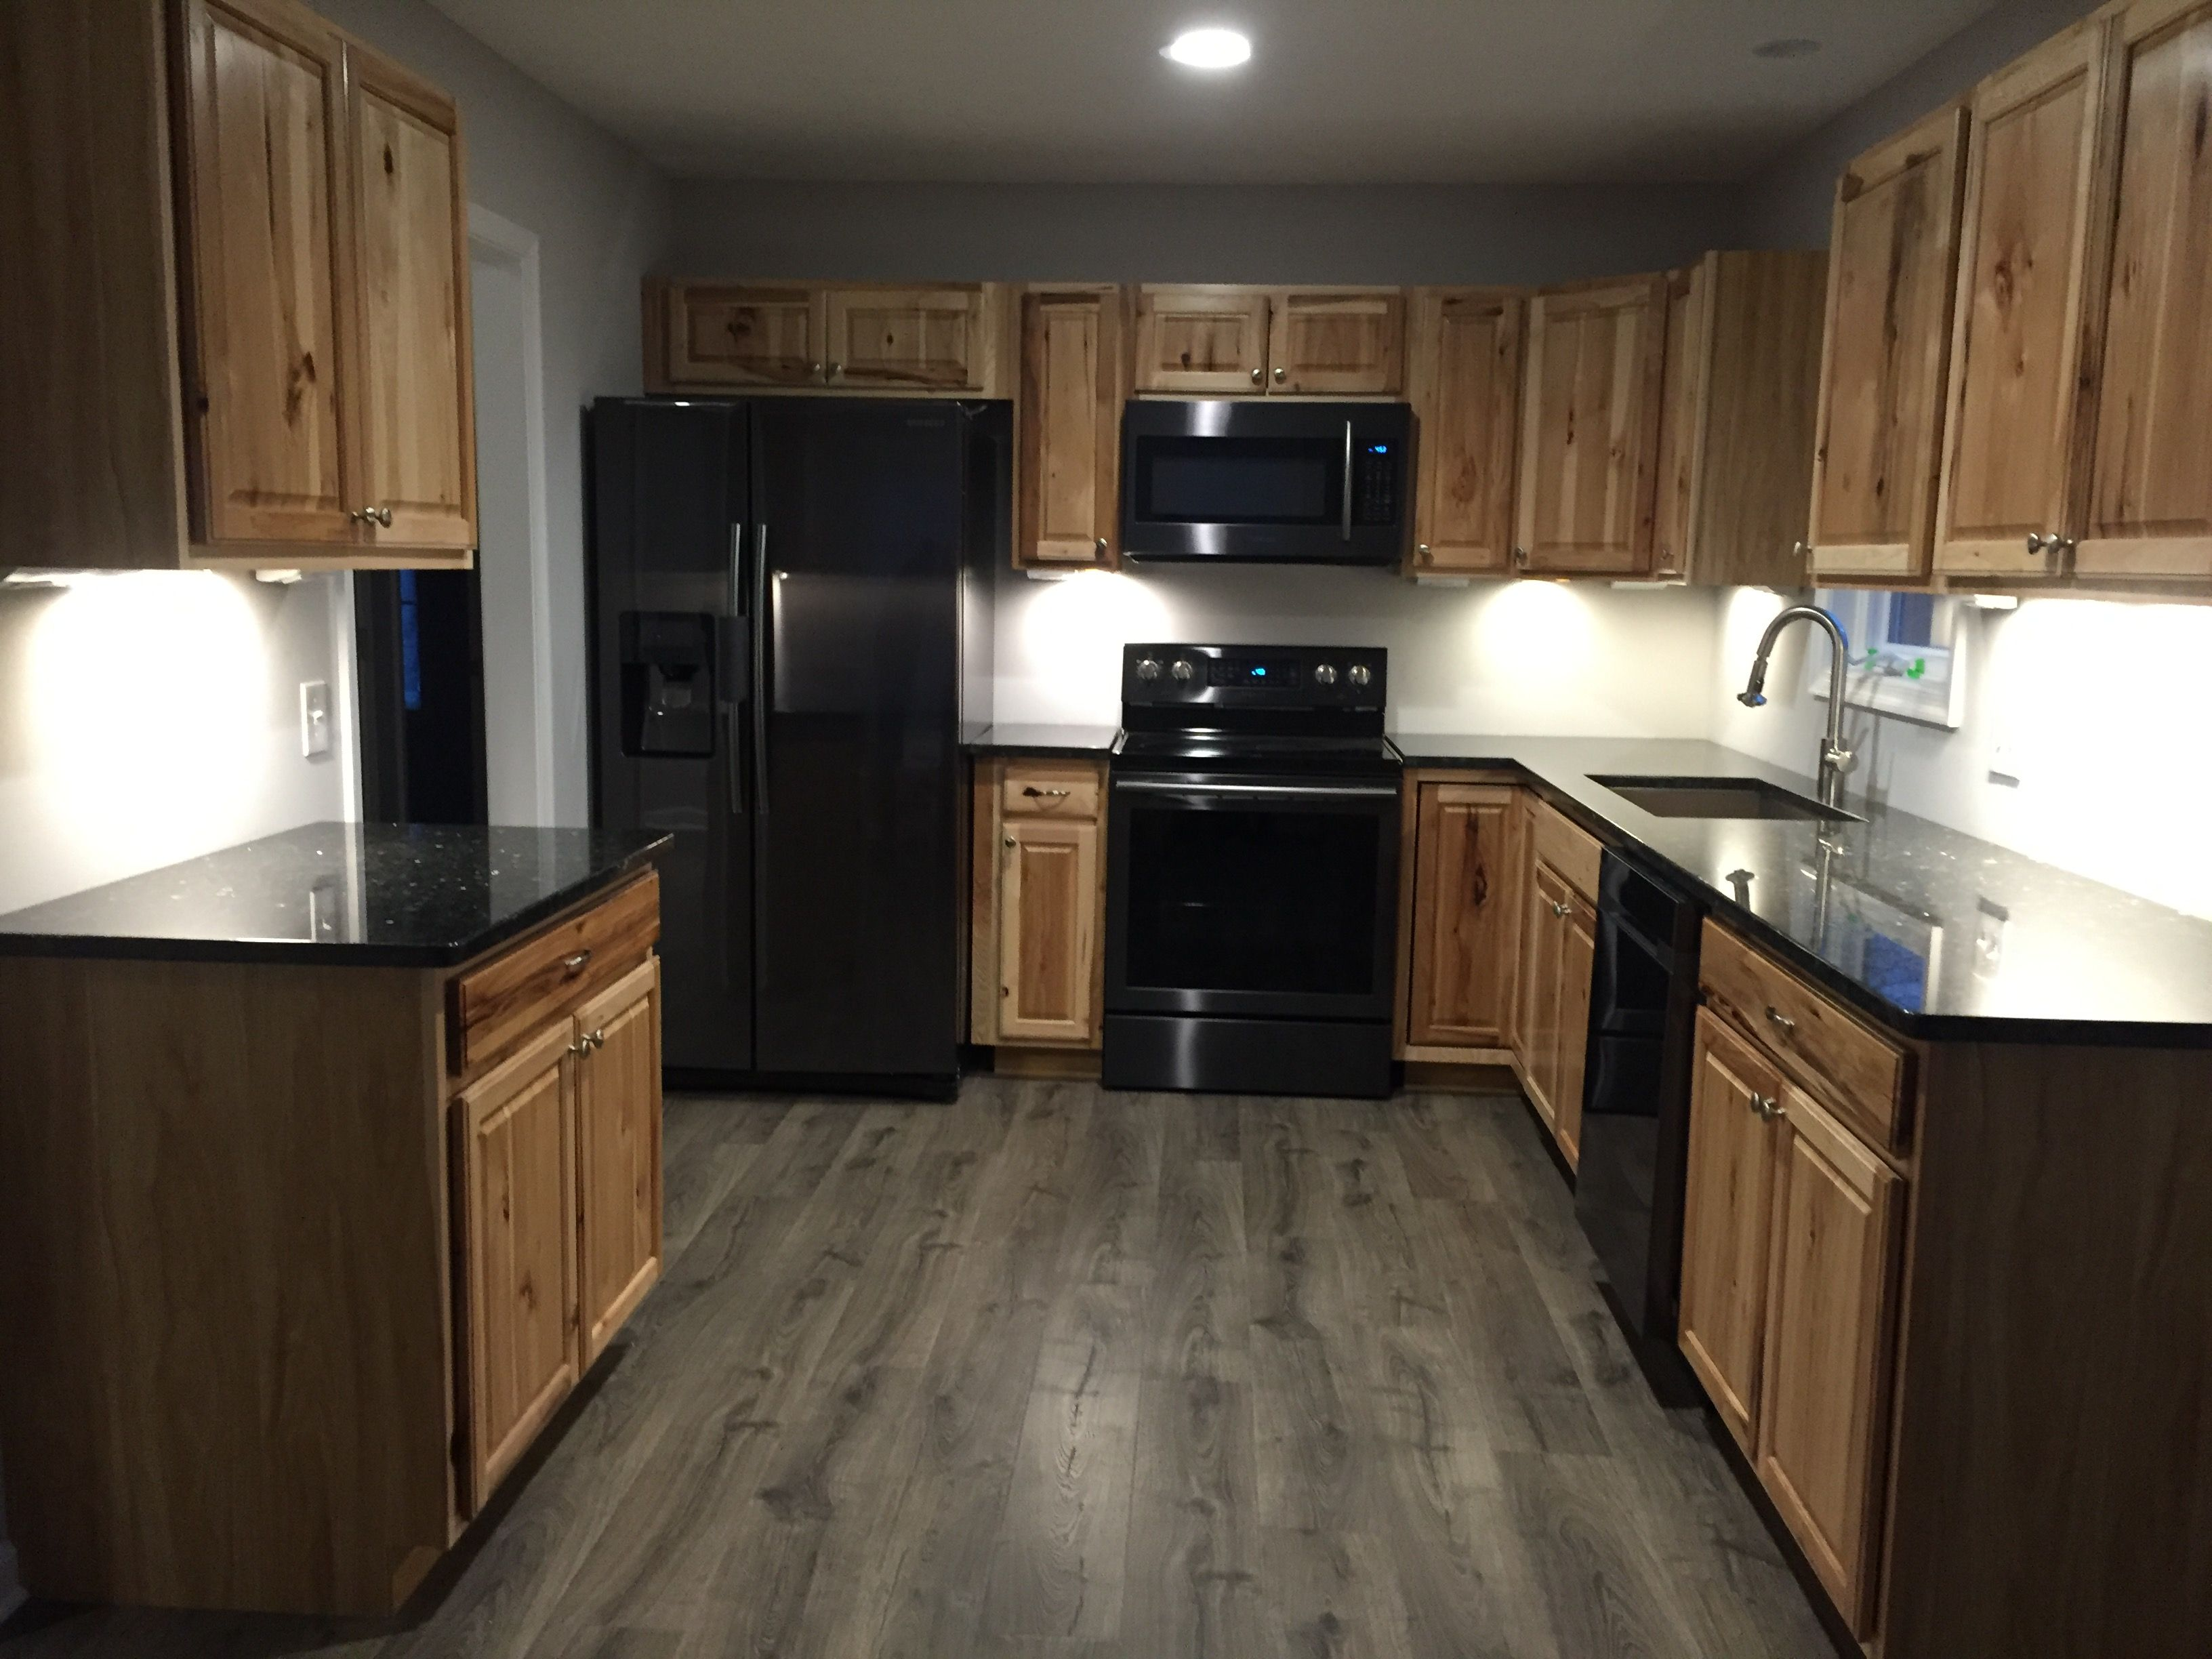 Hickory Cabinets Black Stainless Appliances Black Appliances Kitchen Black Stainless Appliances Hickory Kitchen Cabinets